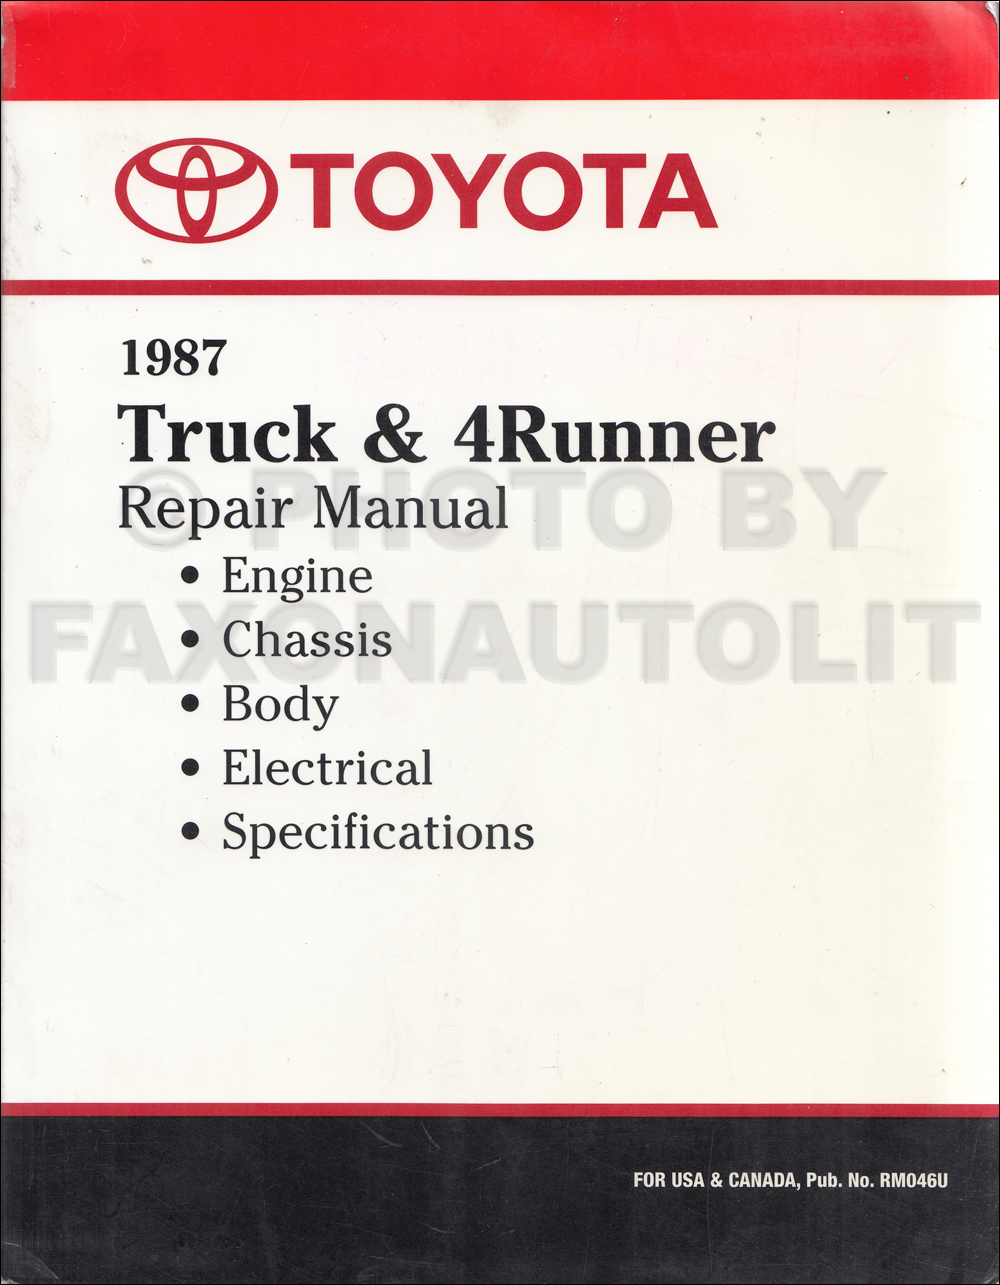 1987 Toyota Pickup Truck and 4Runner Repair Shop Manual Factory Reprint  $179.00